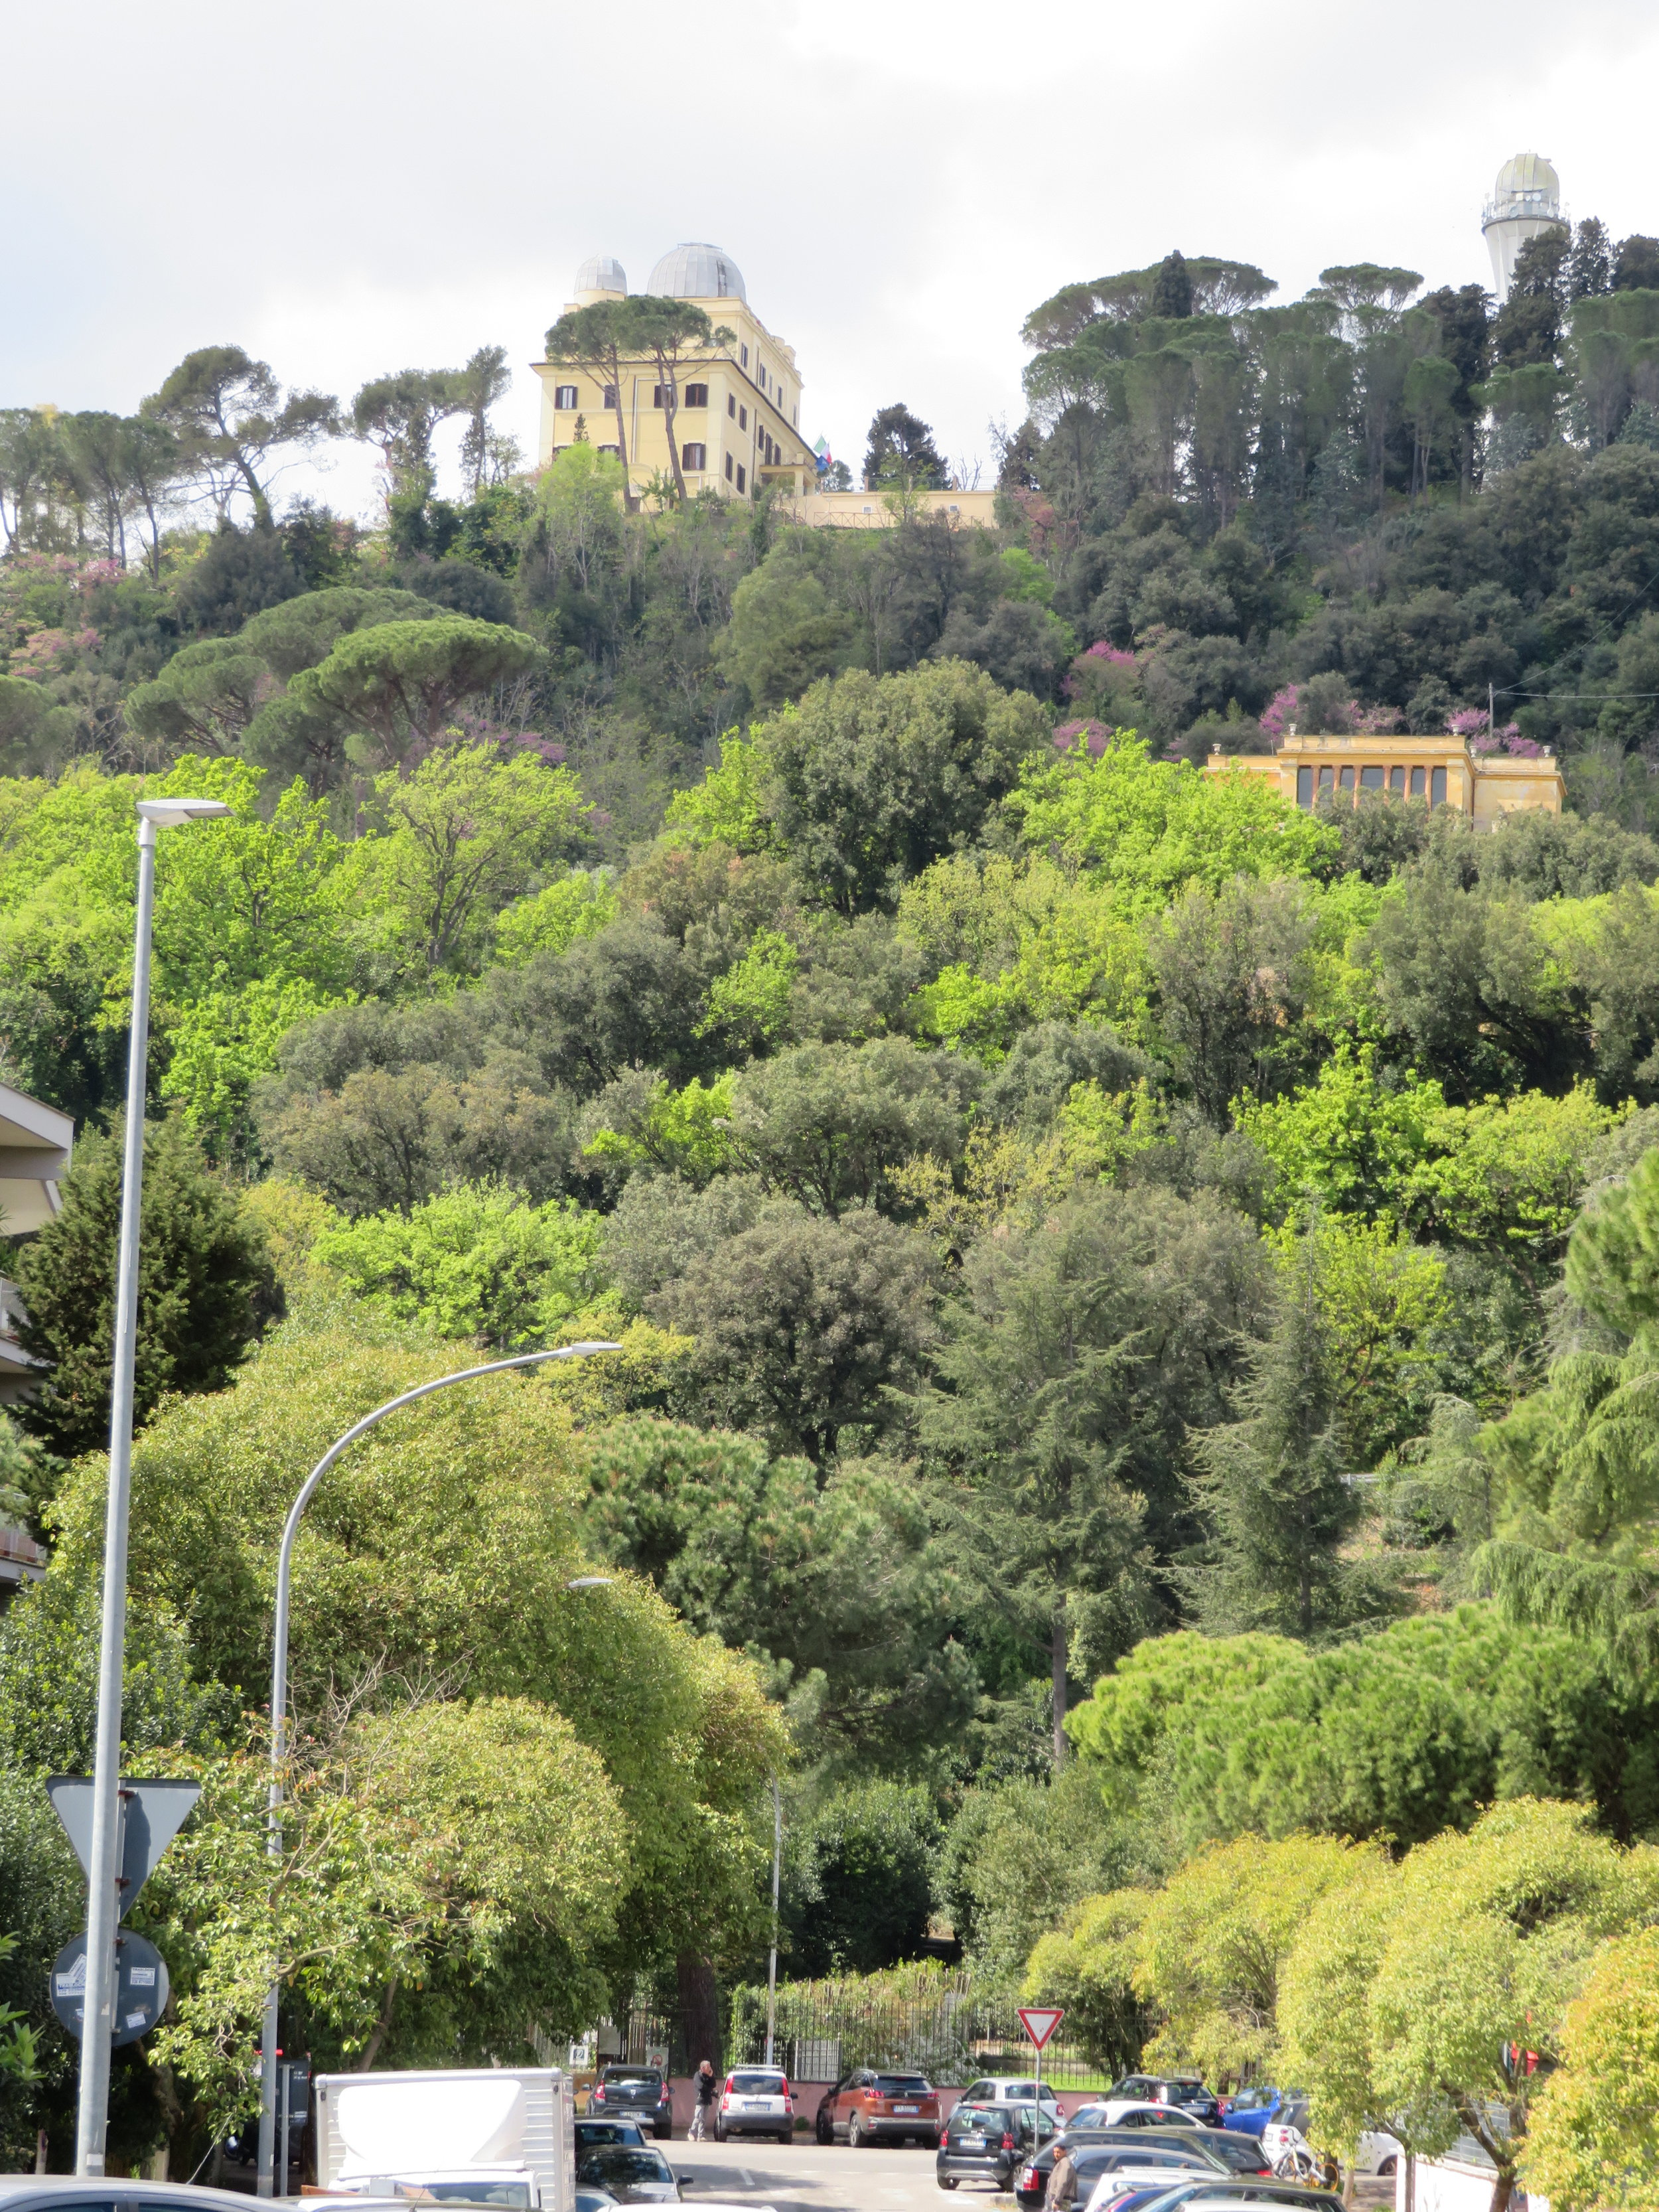 We decided to walk the 1.6 miles from the Square (the official beginning of the Via Francigena) to the start of the path out of Rome rather than retrace our steps in the morning. Our walk will begin at the entrance to the Parco Monte Mario, then up that hill.